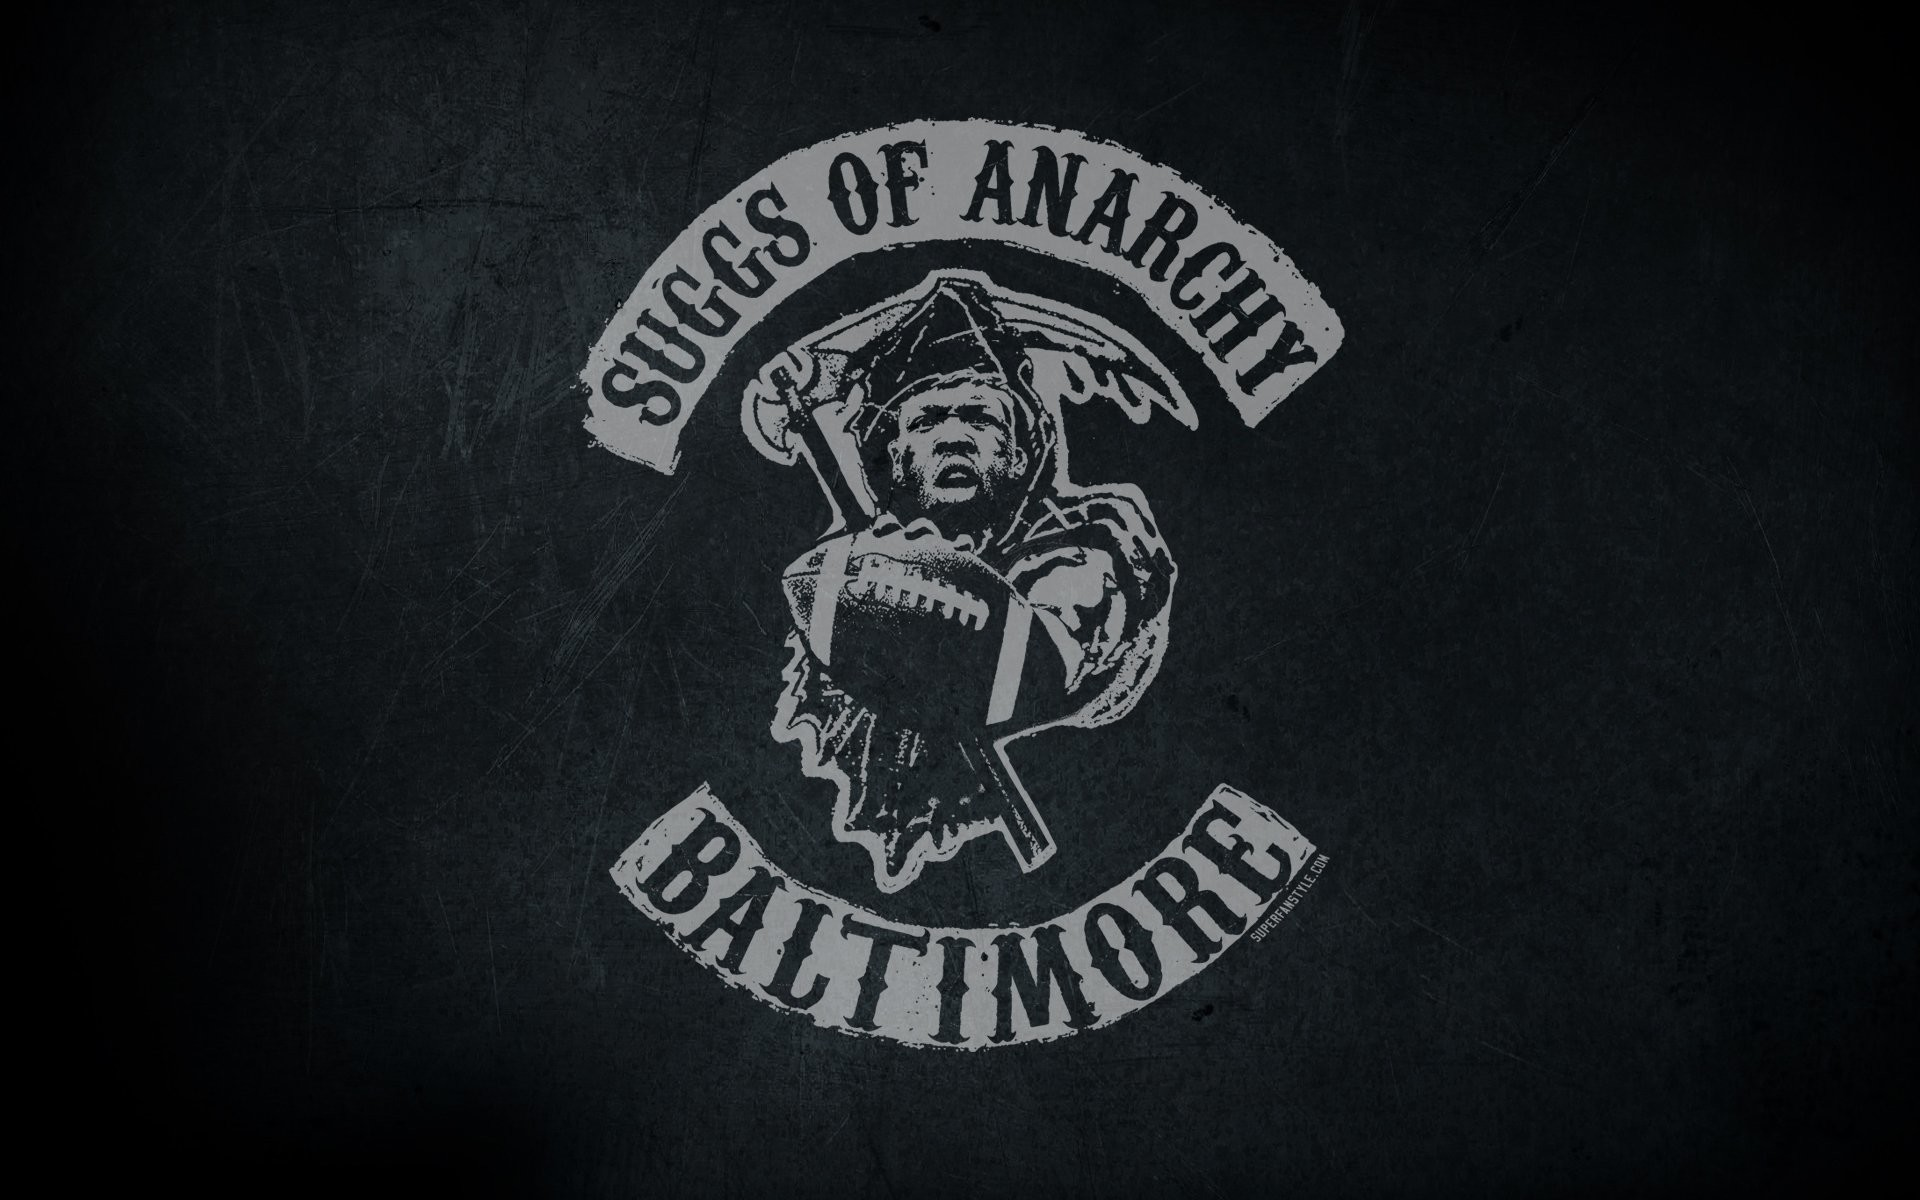 1920x1200 Suggs of Anarchy Wallpaper